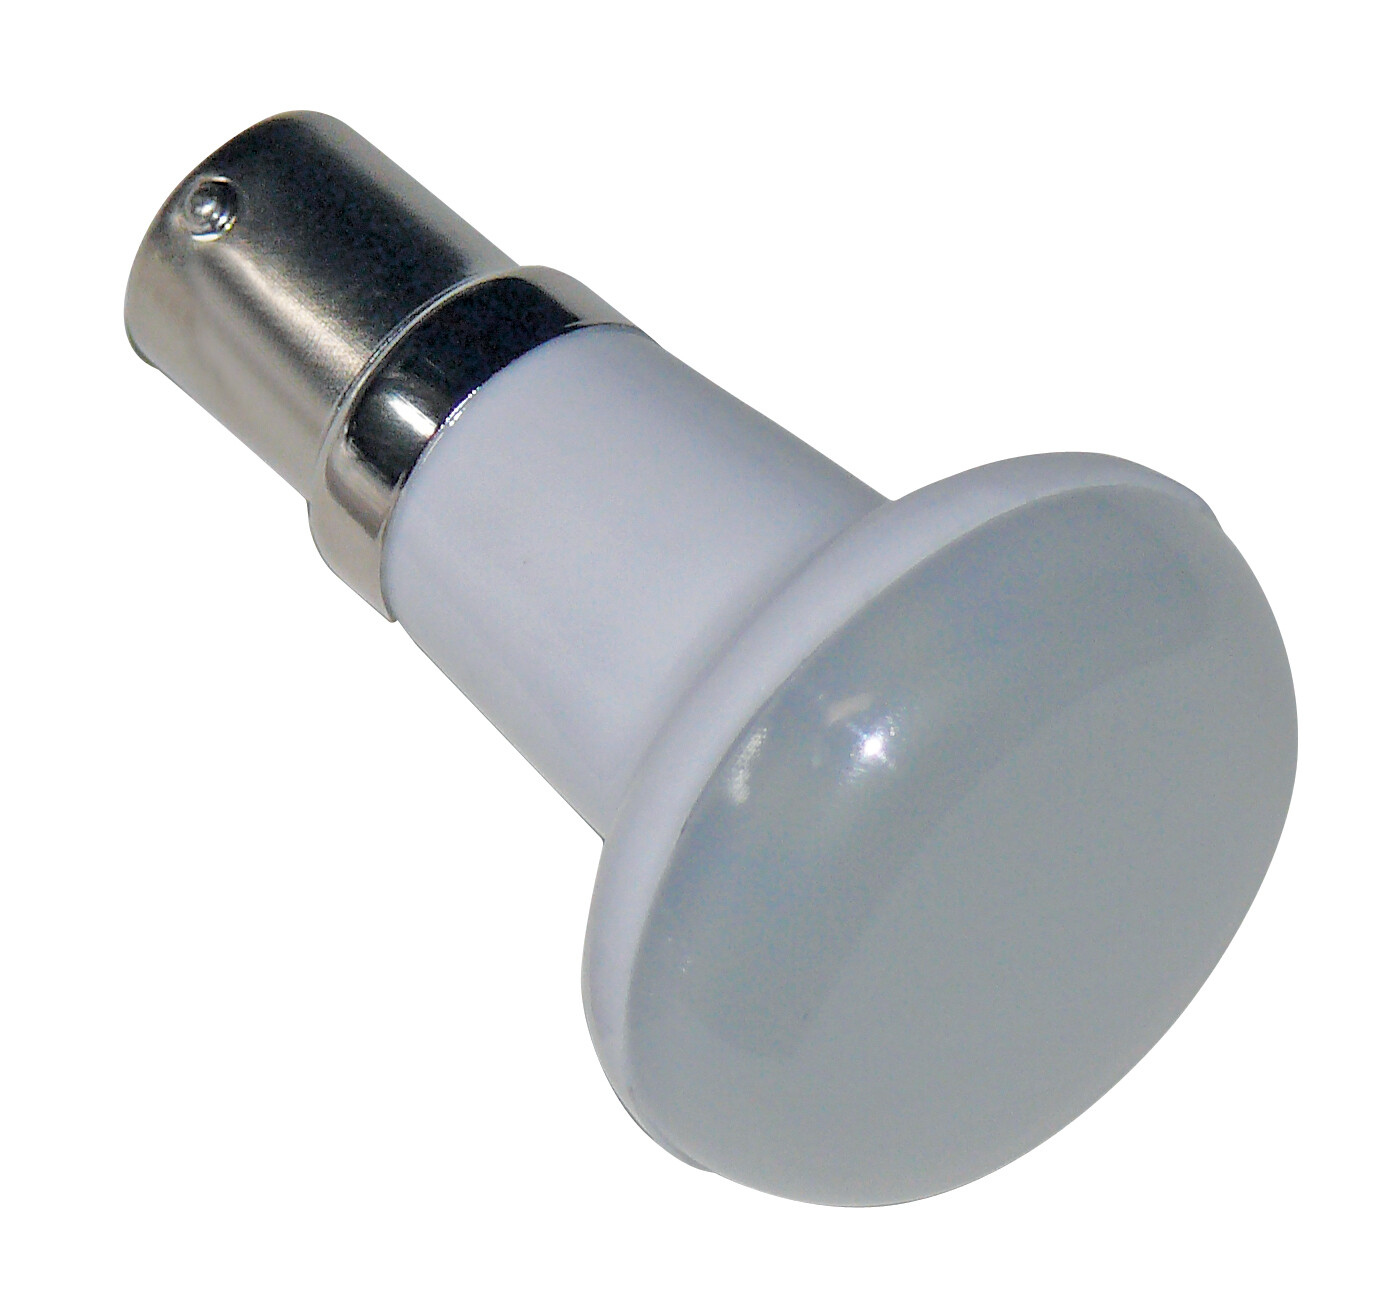 LED Bulb 1383 Spot Light Replacement, Warm White